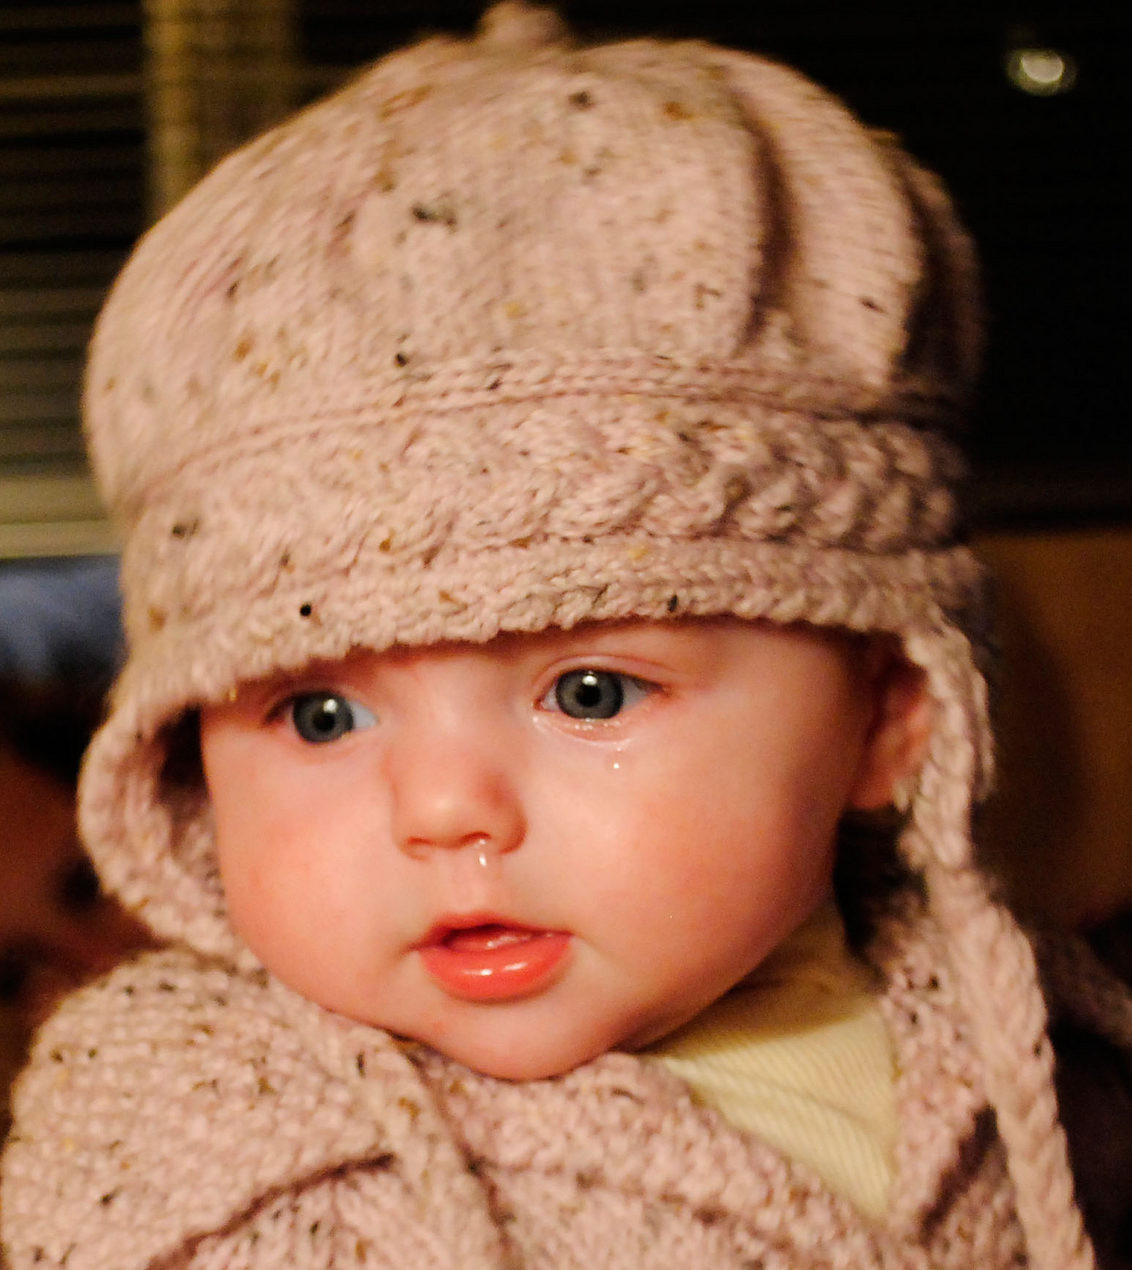 Knitted Baby Hats Luxury Baby Hat Knitting Patterns Of Awesome 41 Images Knitted Baby Hats